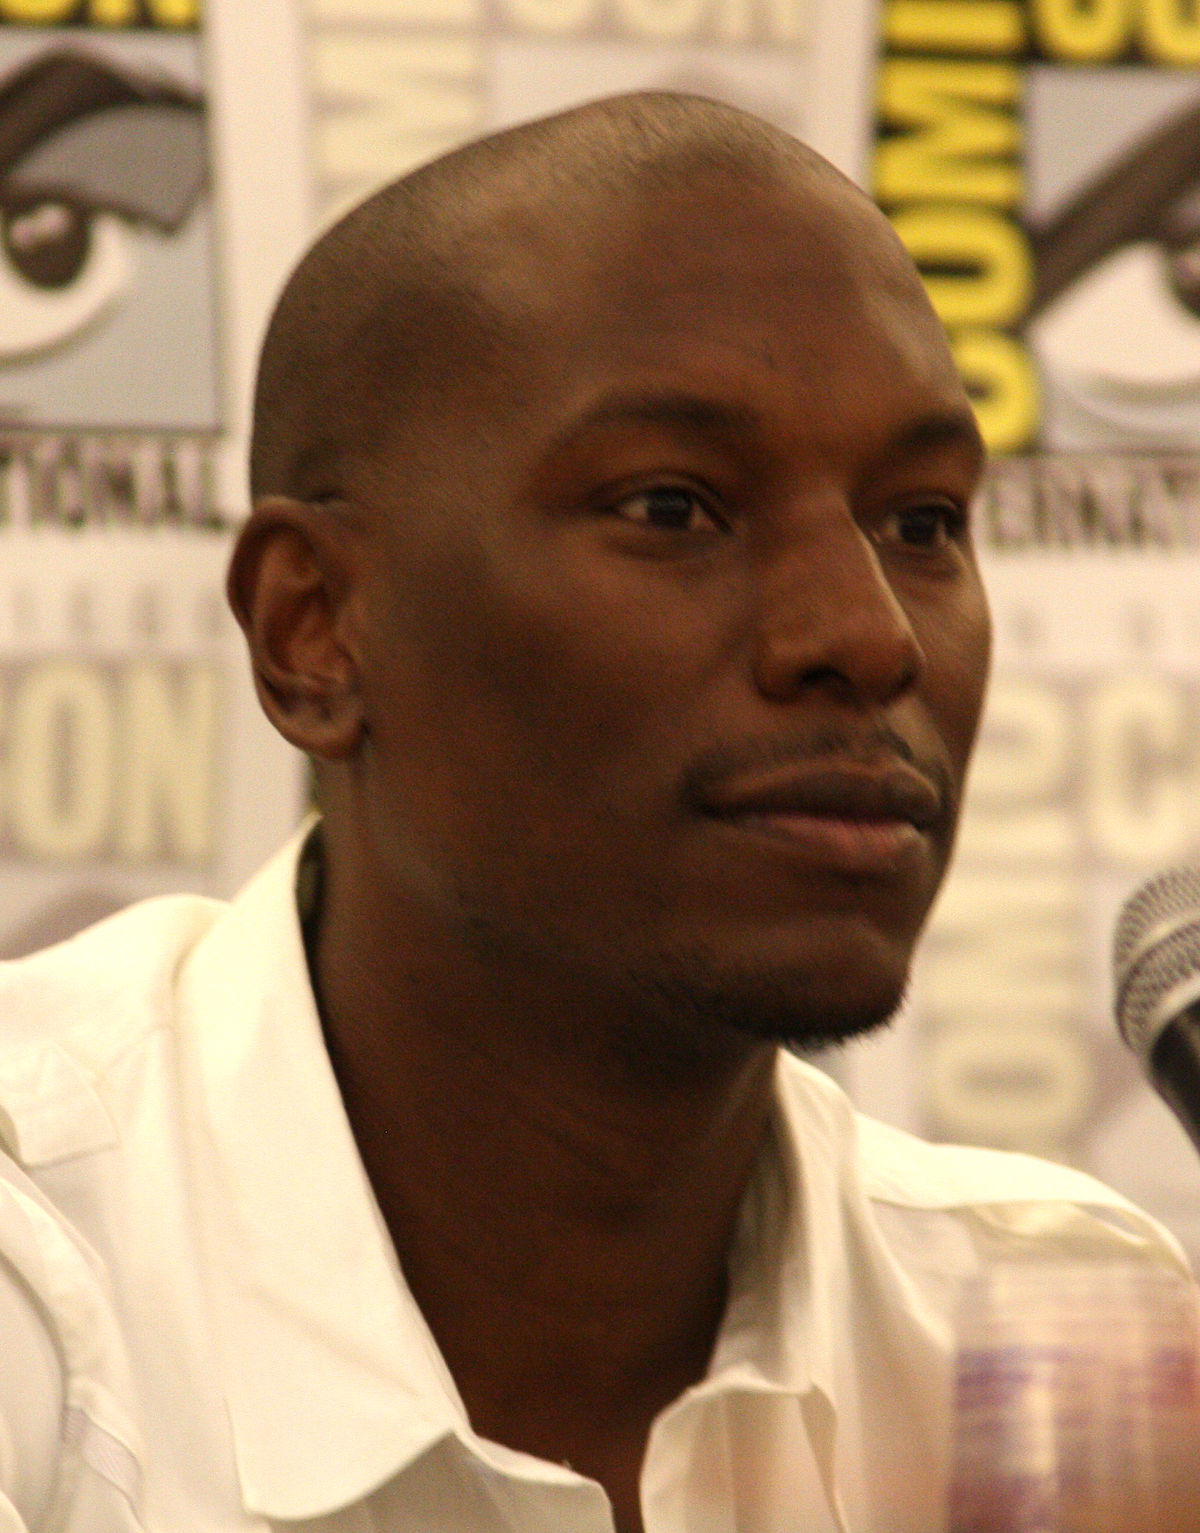 Singer tyrese gibson advise you